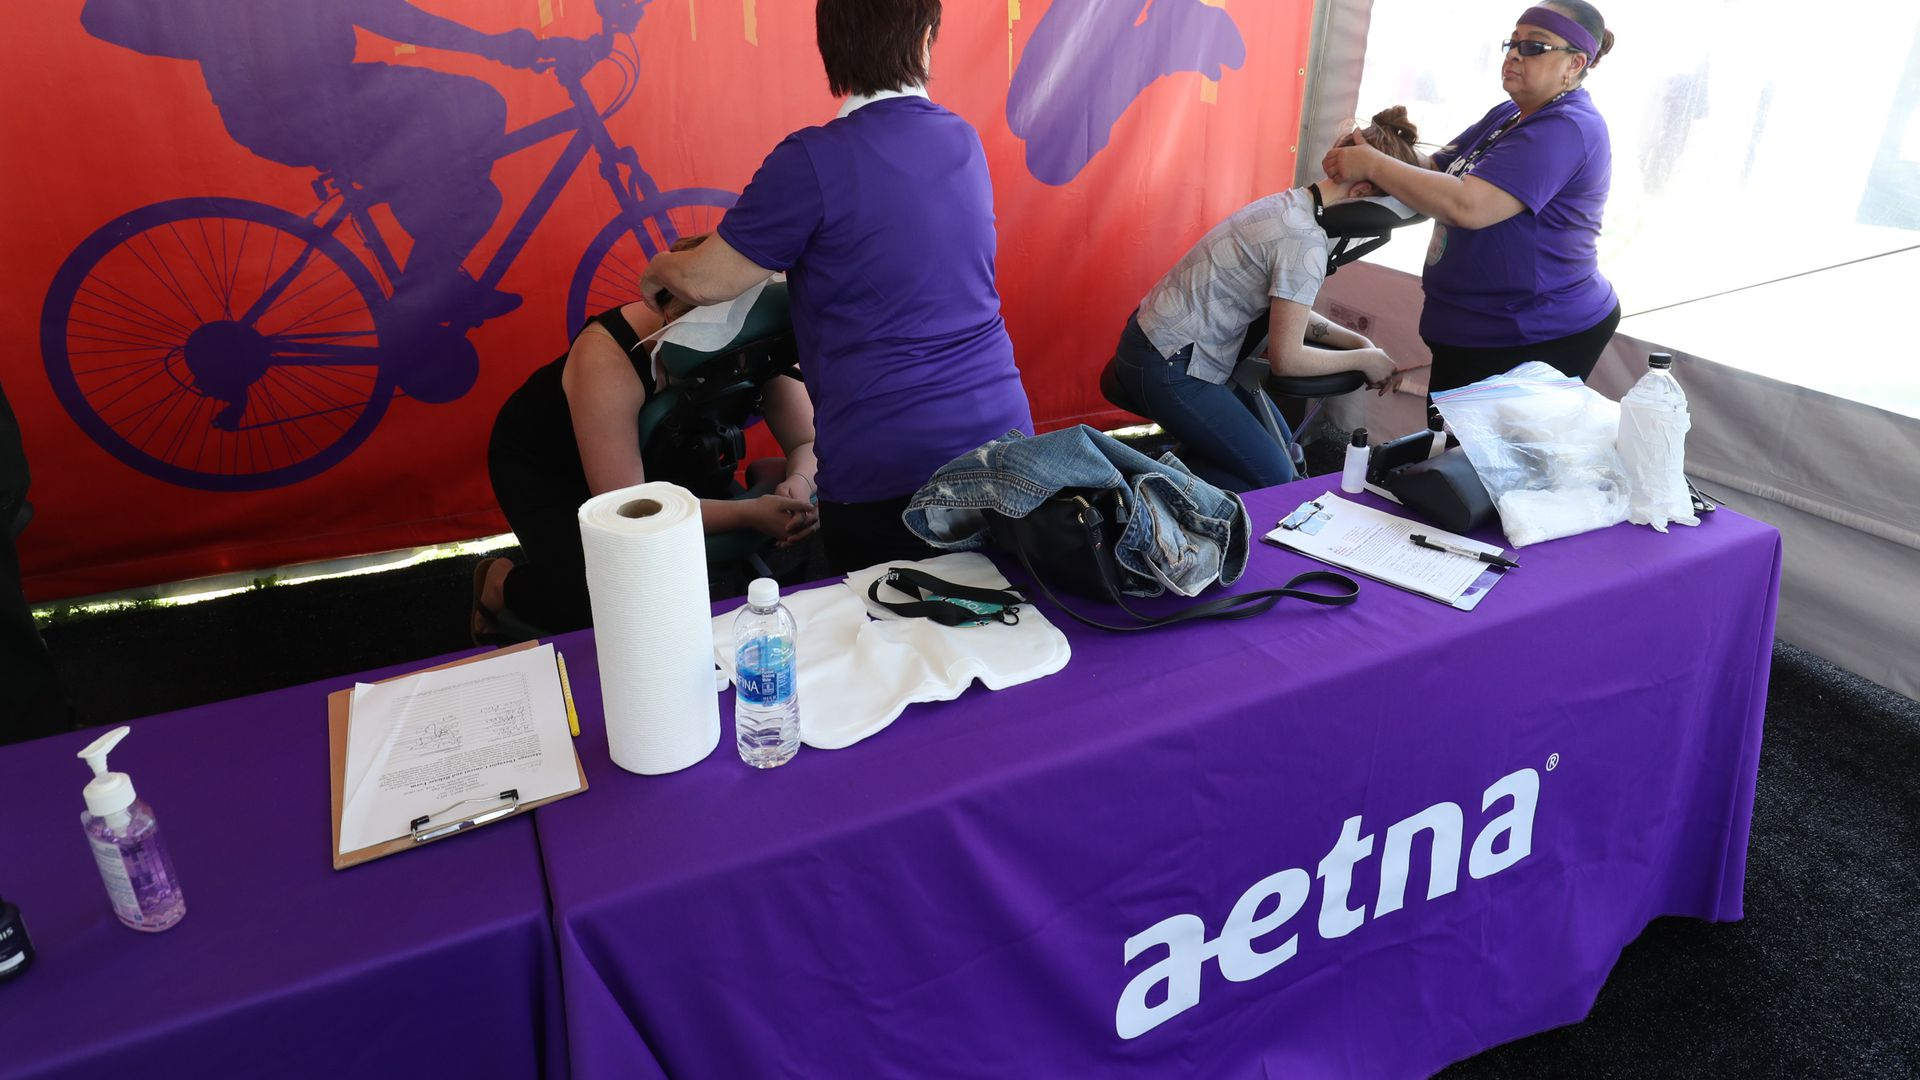 An Aetna tent at an event in New York.